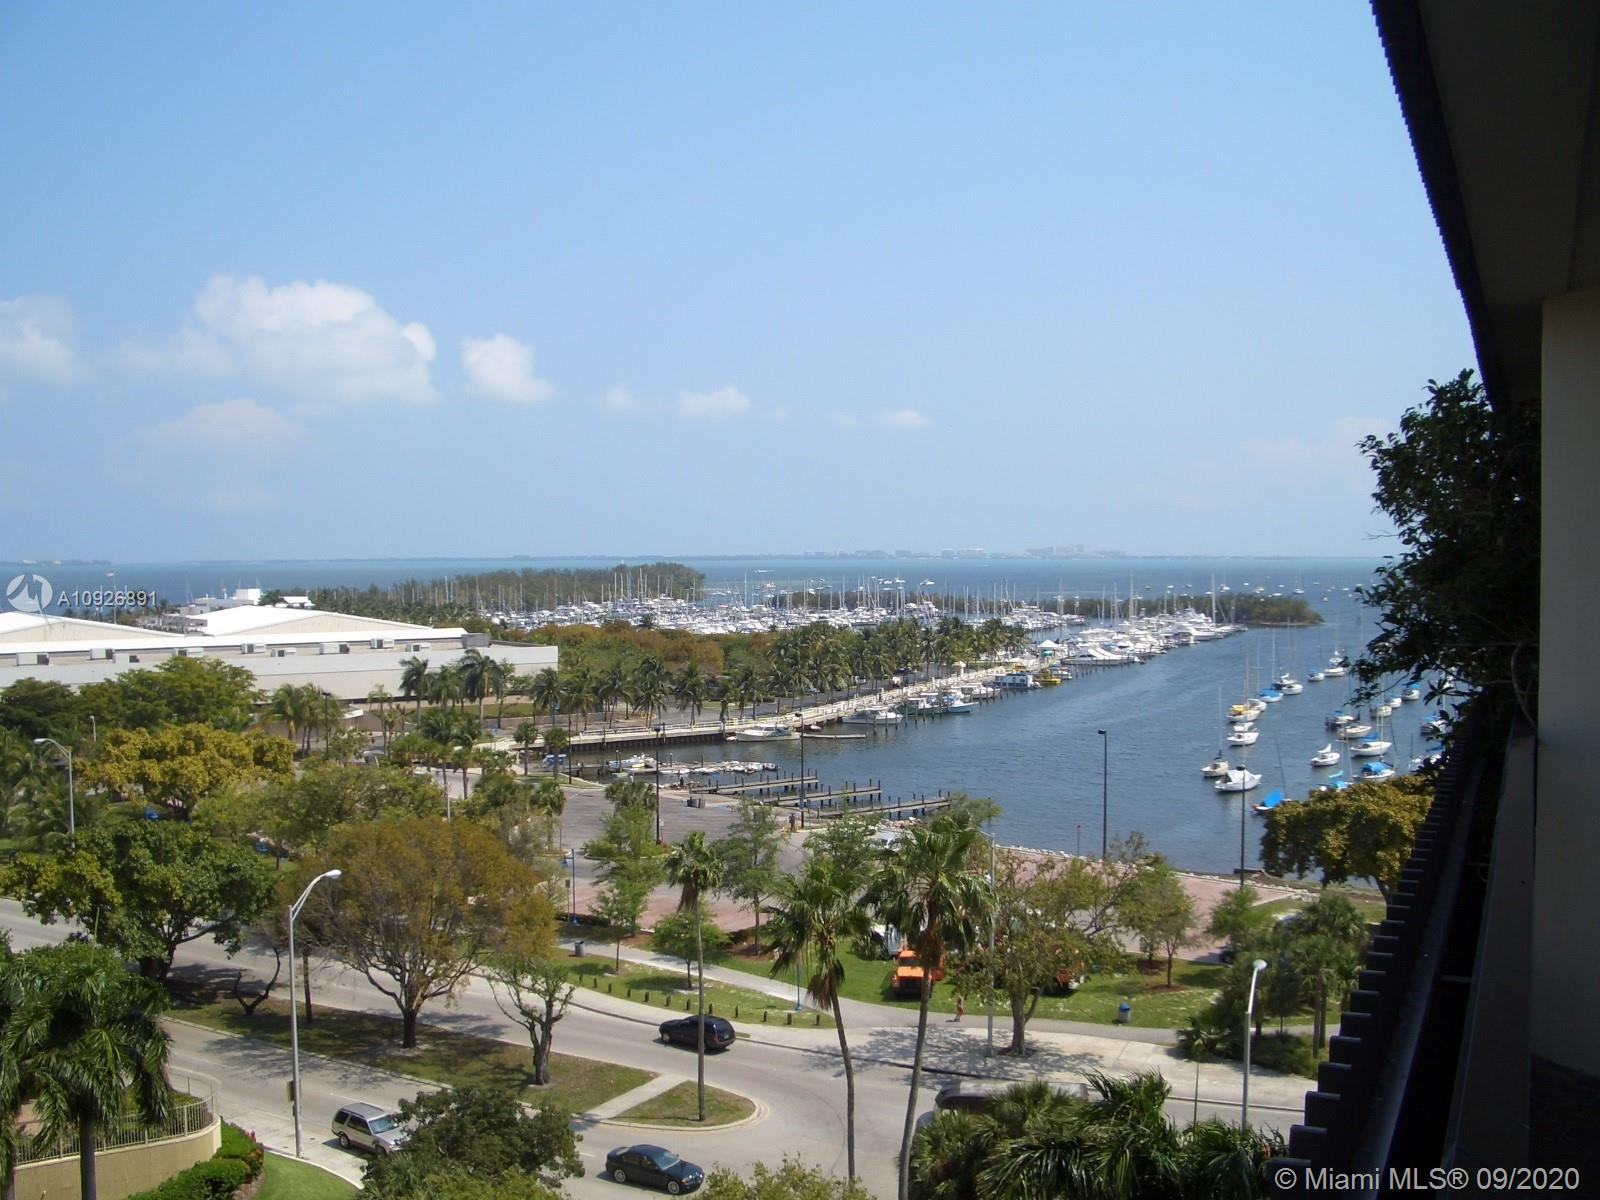 Gorgeous Coconut Grove building with easy access to all the Grove has too offer.  This large 1 bedroom 1 bath ocean view unit is in move in condition and ready for a new owner.  Designed by renowned architect, Kenneth Treister includes two heated pools, library, valet and tennis courts.  This building is in excellent shape and very well taken care of.  WASHER/DRYER in UNIT.  Easy to show and aggressively priced makes this a must see.